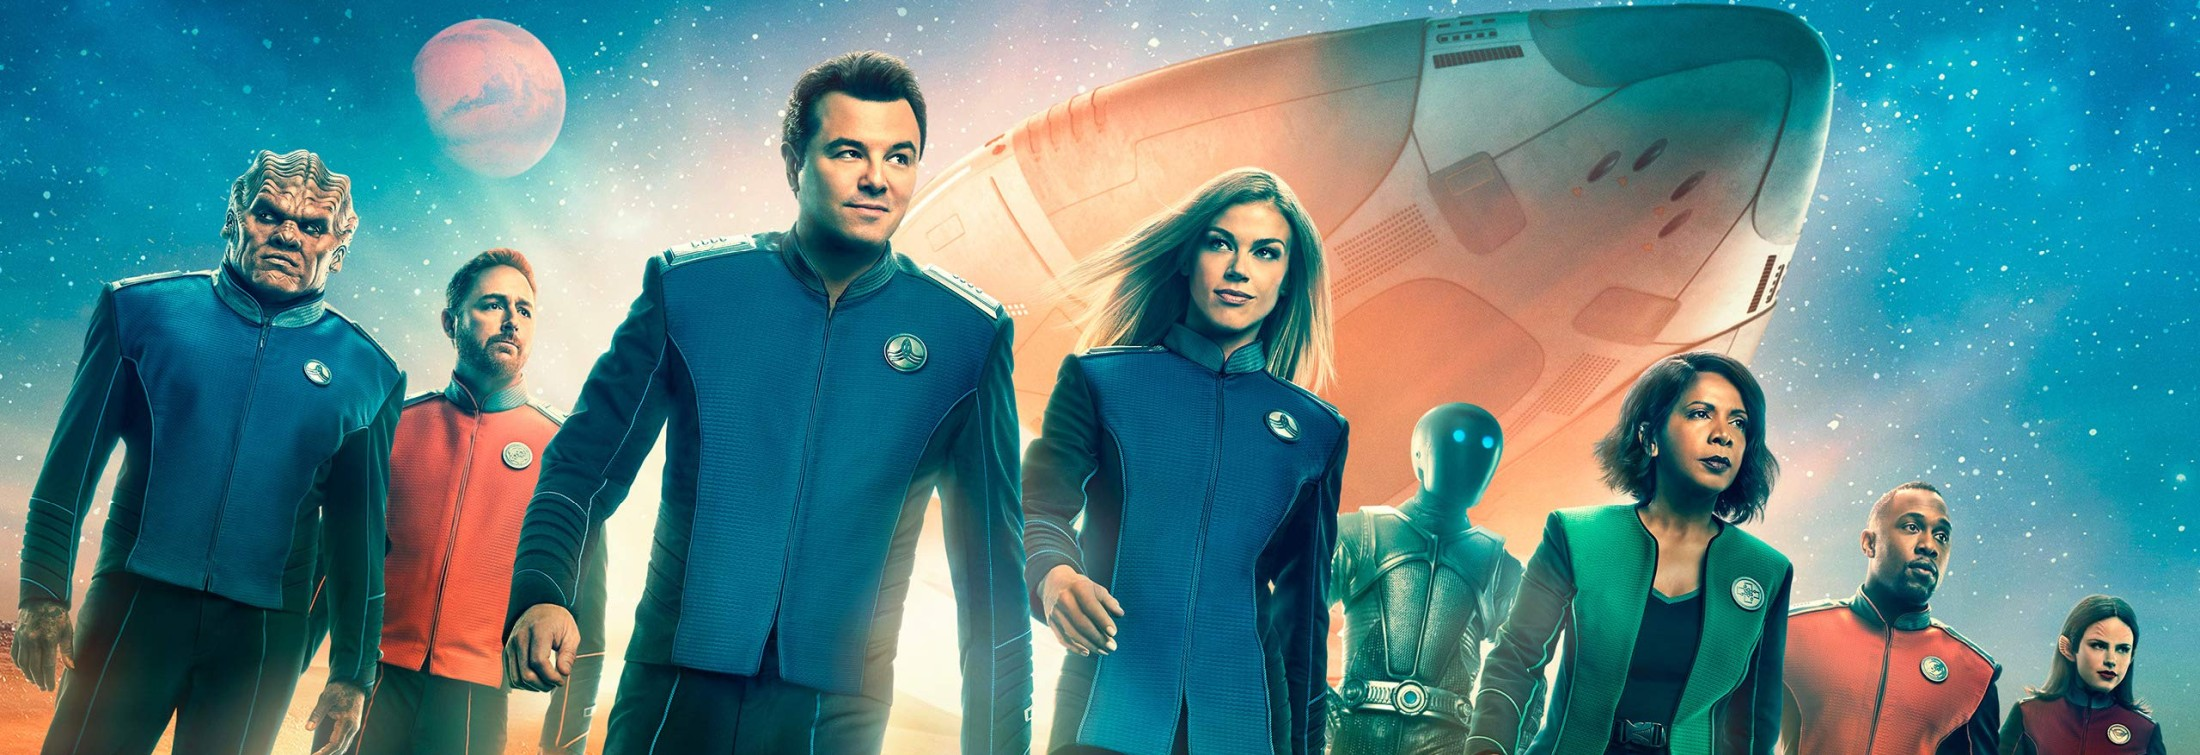 TheOrville ©Fox Television